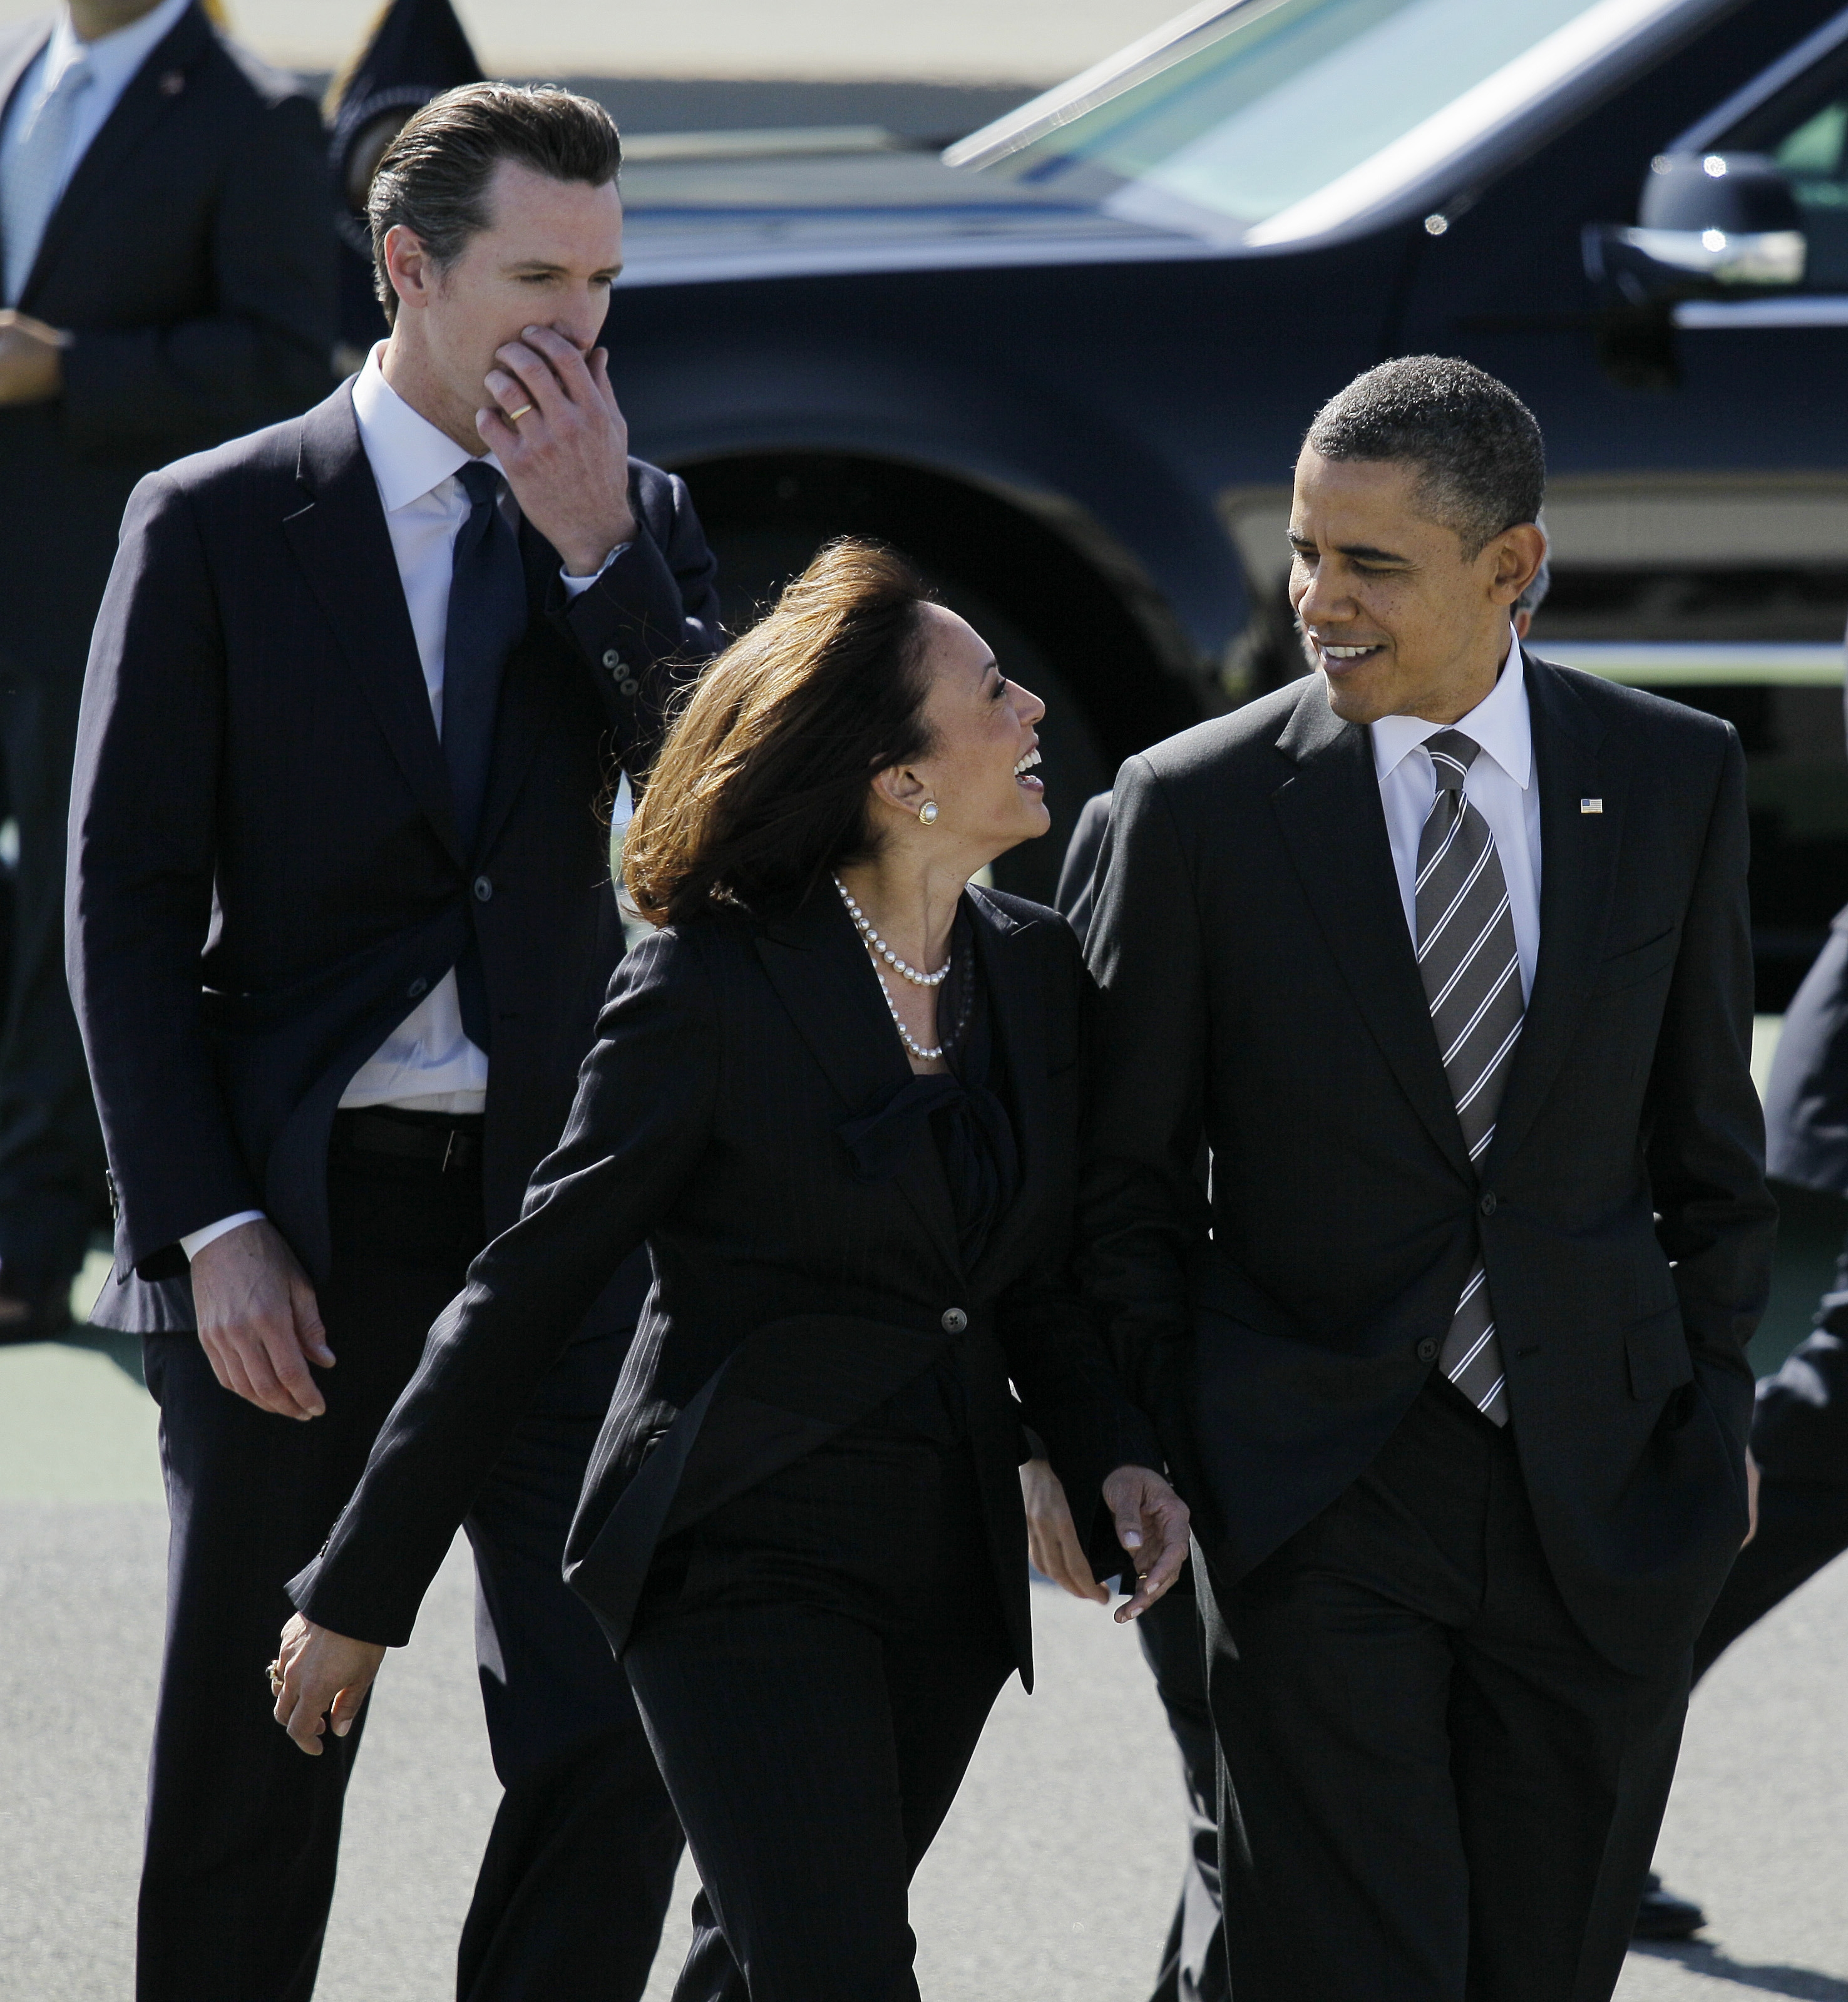 President Obama has apologized to Kamala Harris for focusing on her looks last week.